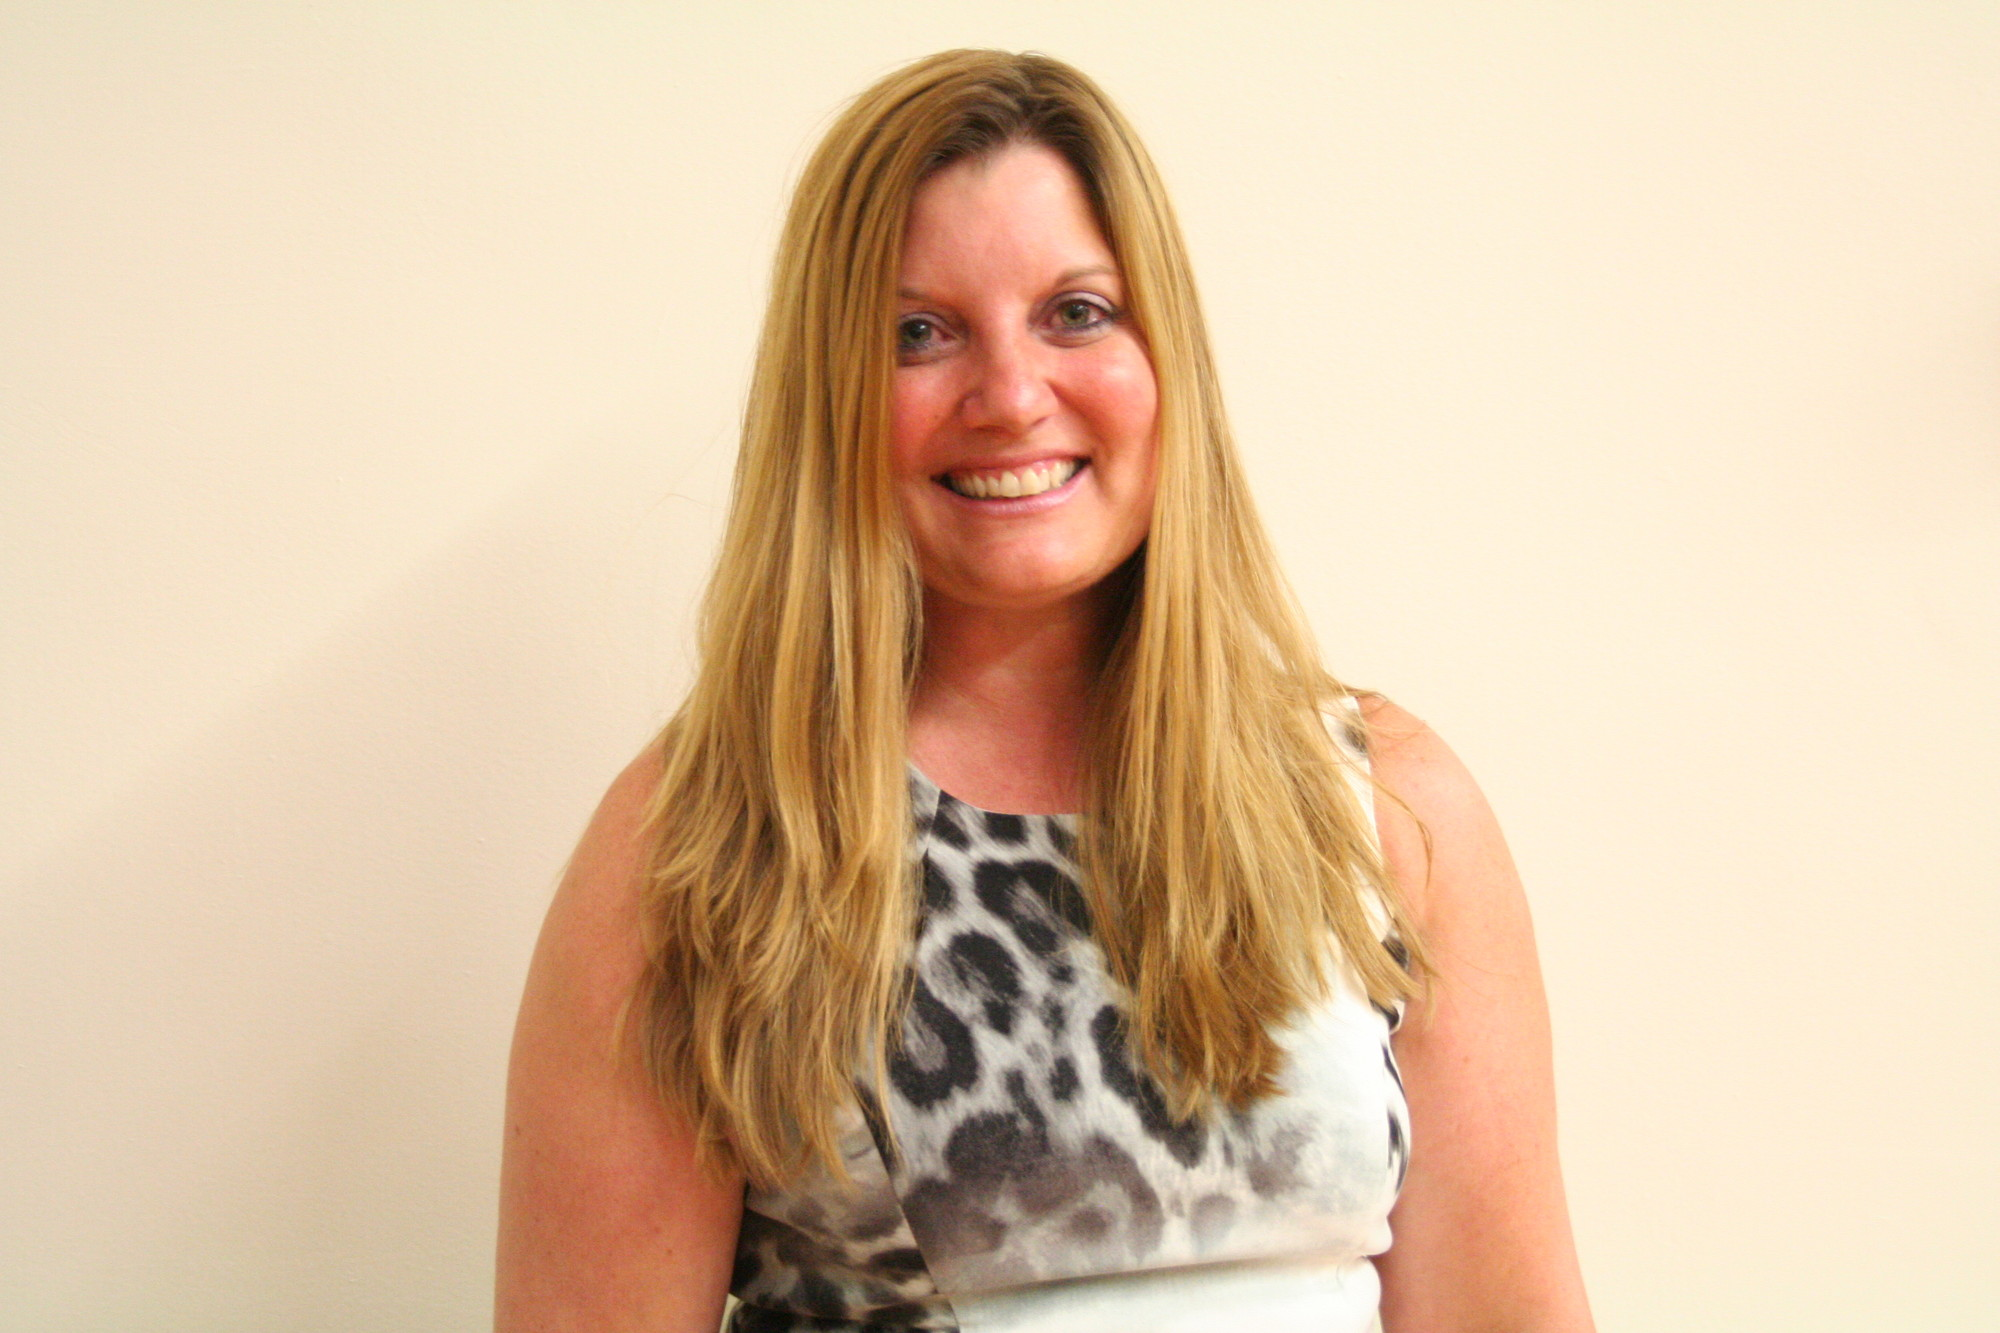 Hewlett-Woodmere School District has a new Facilities Director as Kim Parahus replaces Dennis Sheridan, who retired.